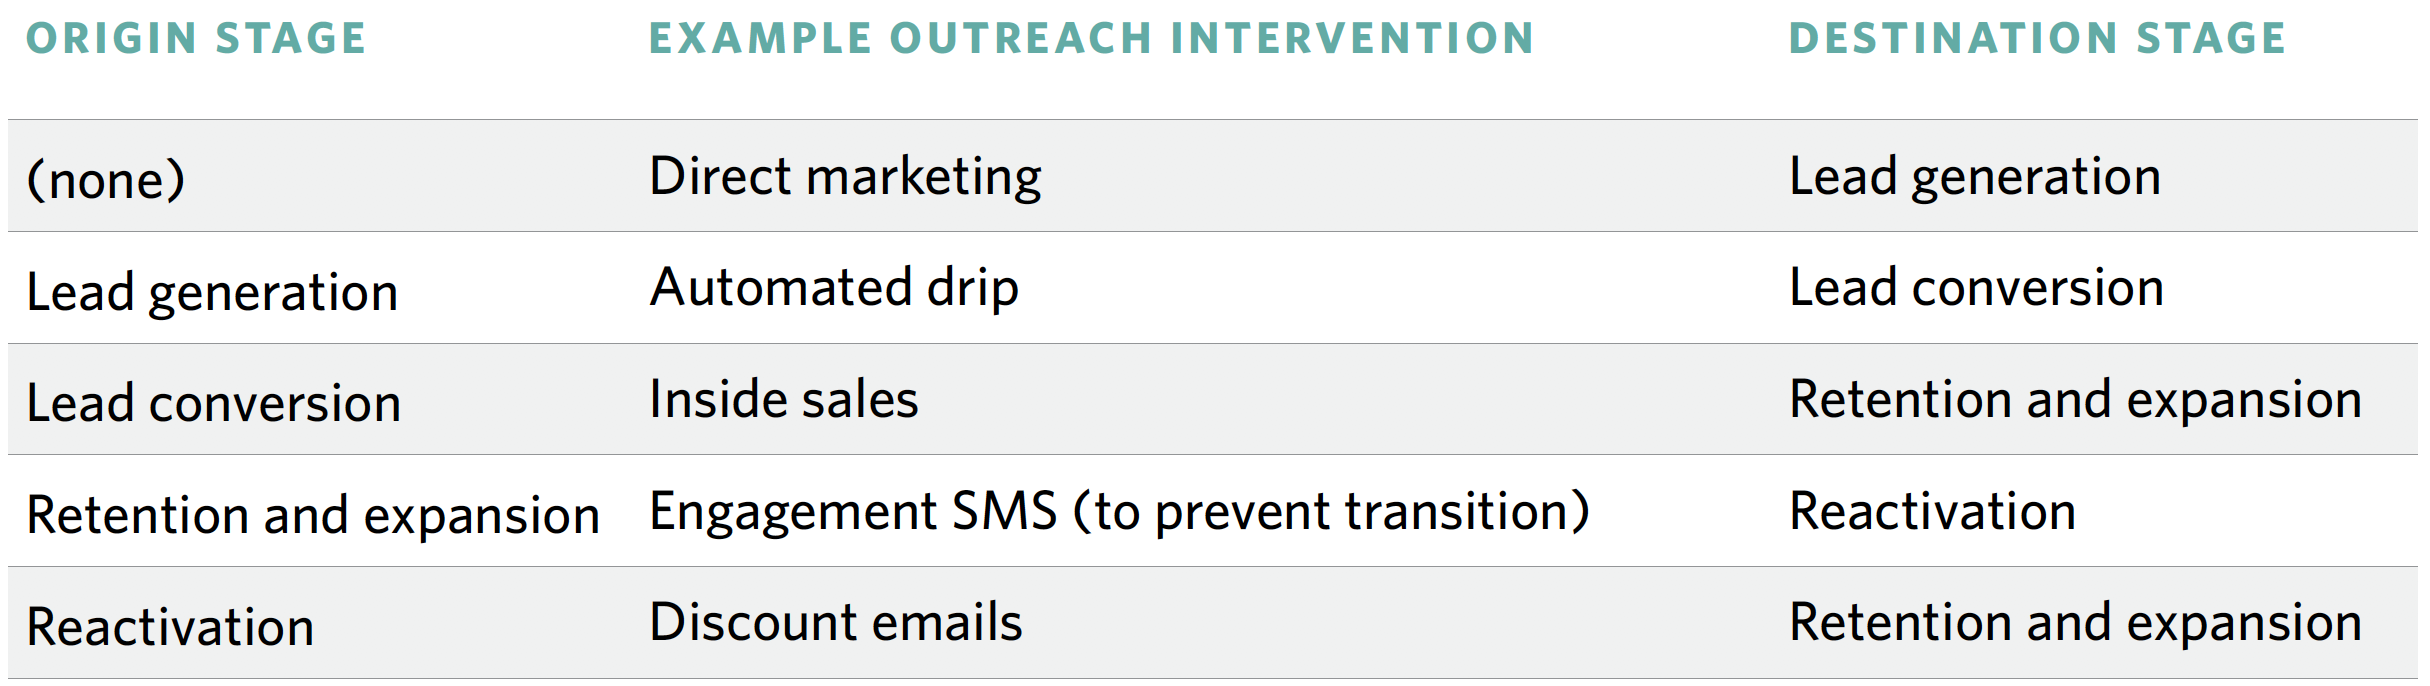 Customer_lifecycle_outreach_intervention